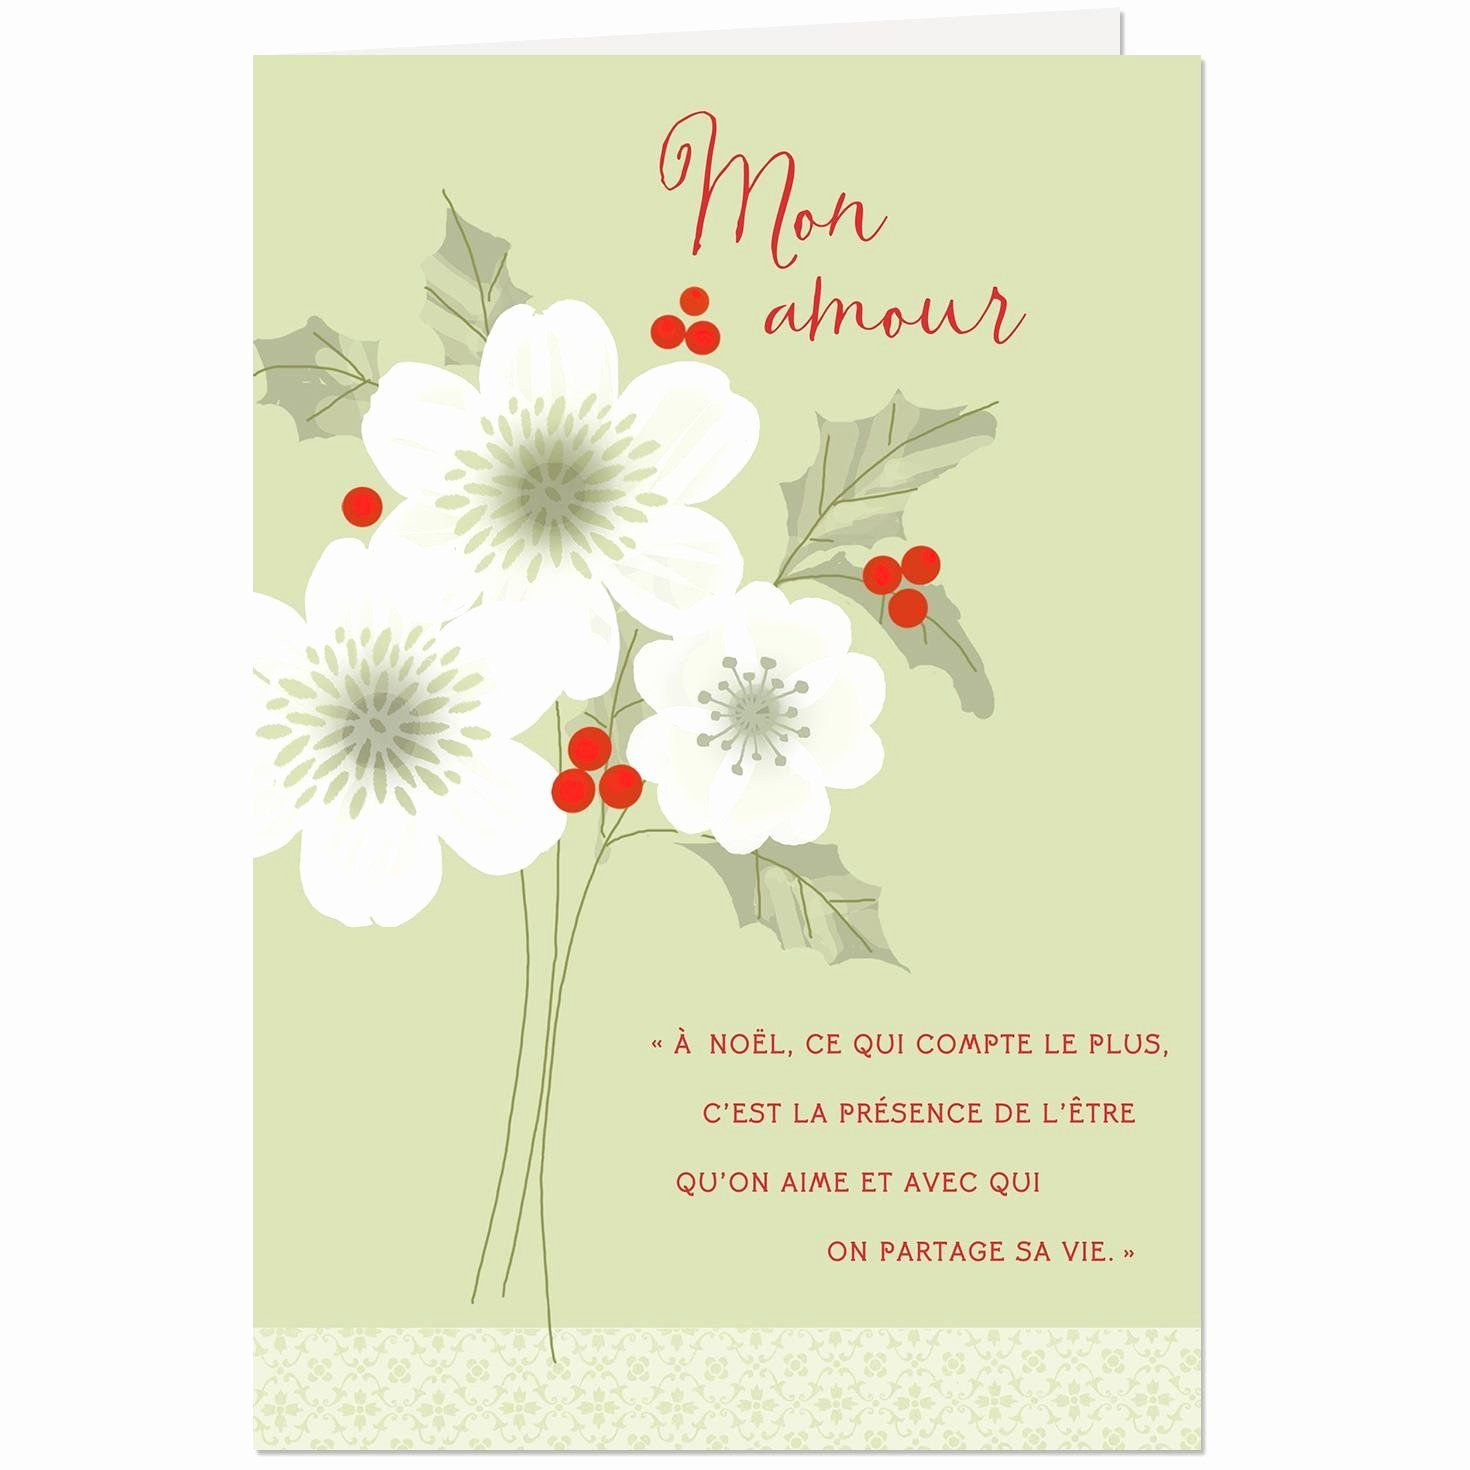 Hallmark Love Cards Luxury My Love French Language Romantic Christmas Card Christmas Cards Romantic Christmas Love Cards